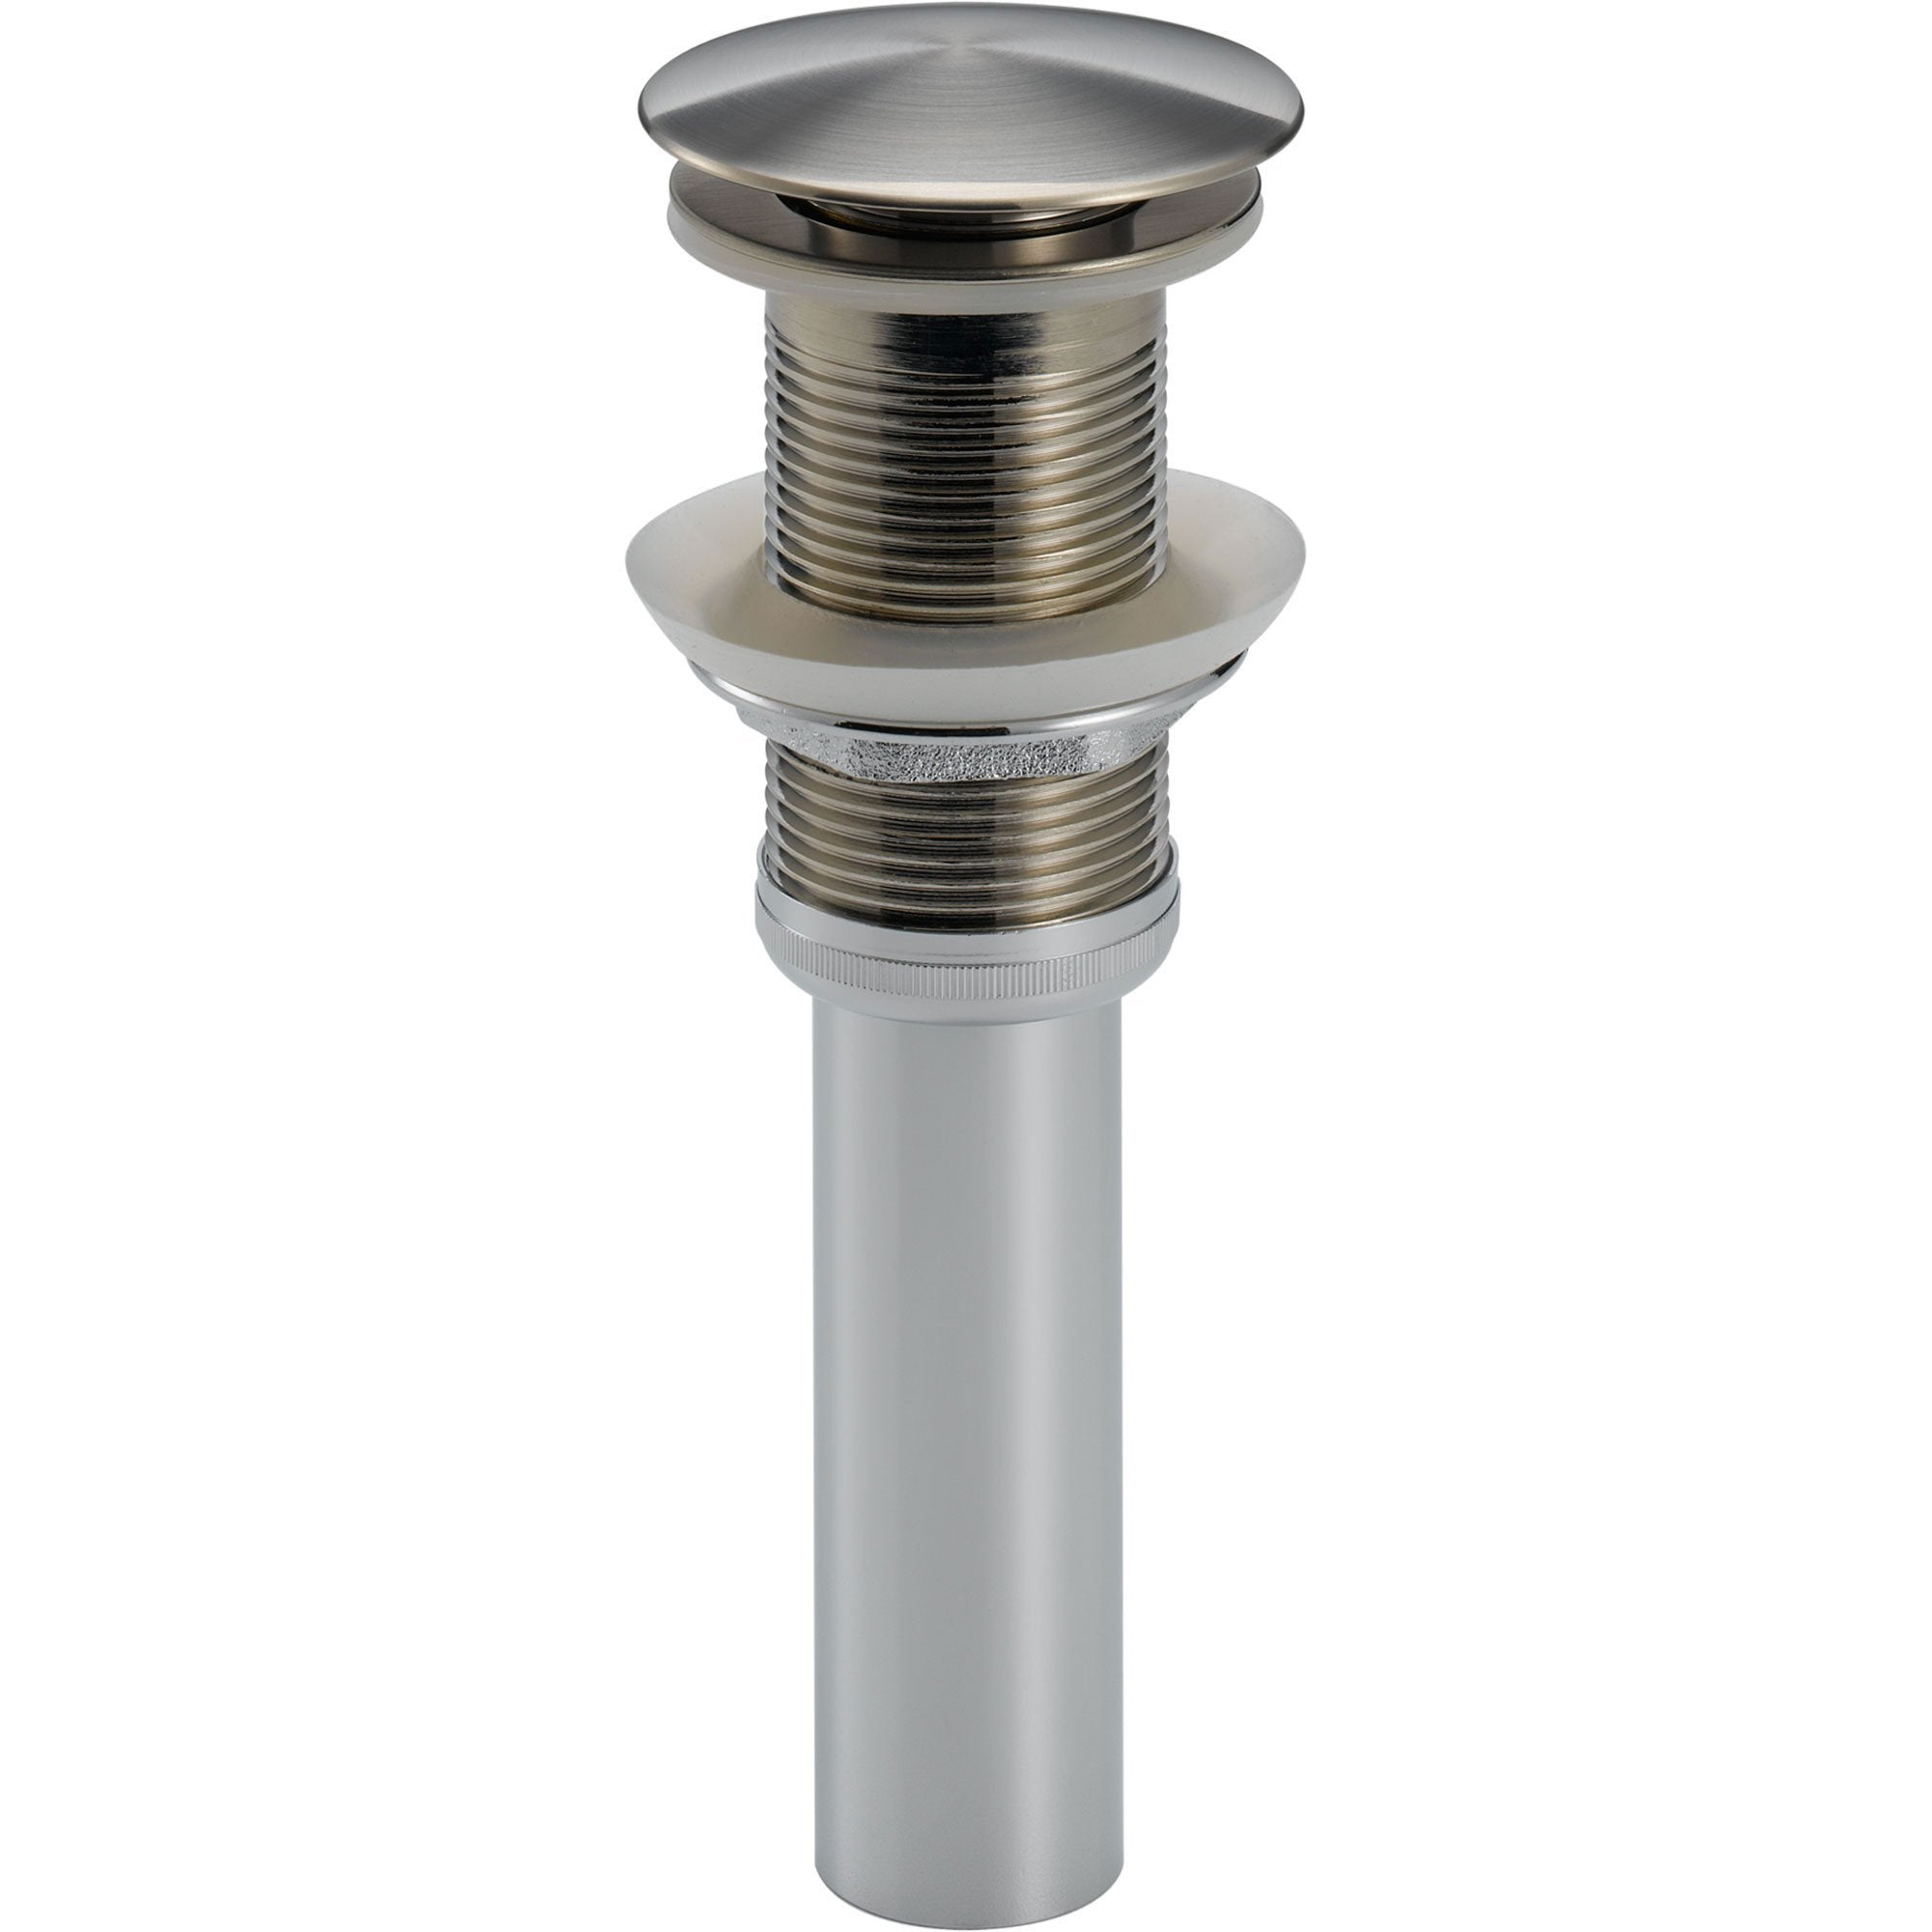 Delta Stainless Steel Finish Push Up Bathroom Sink Drain Without Overflow  609646